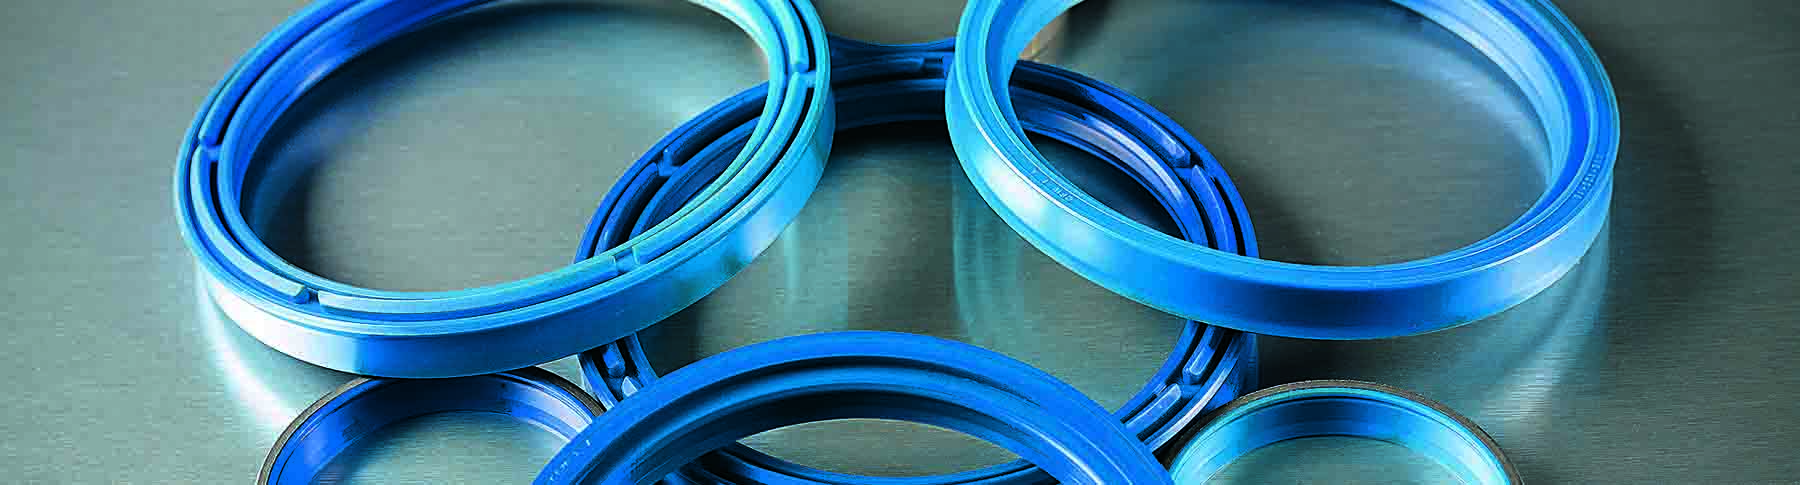 producion of hydraulic seals